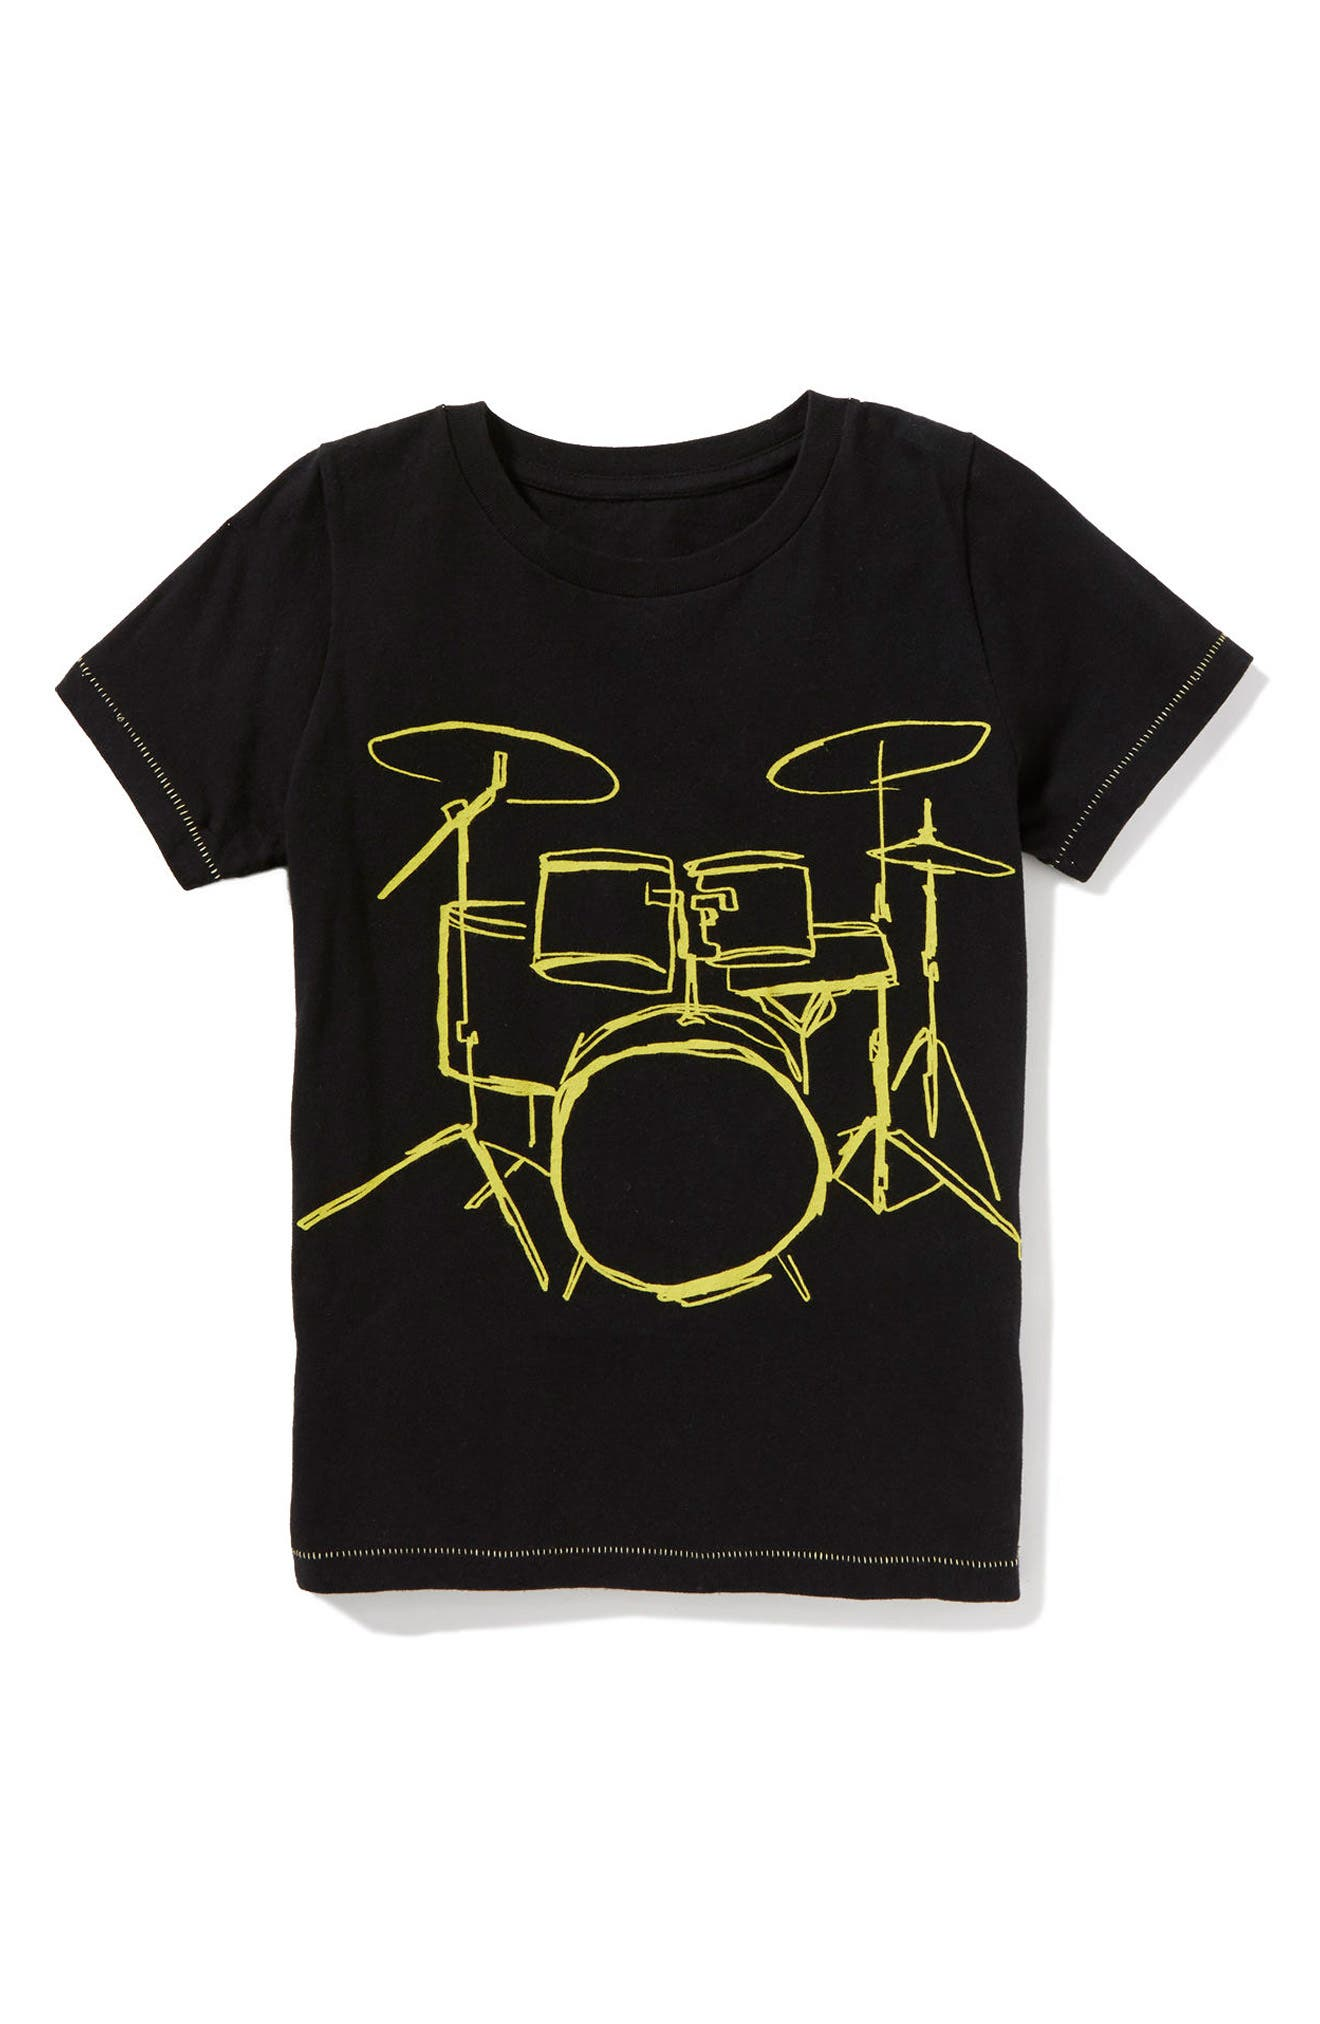 Drummer Wanted Graphic T-Shirt,                         Main,                         color, 001